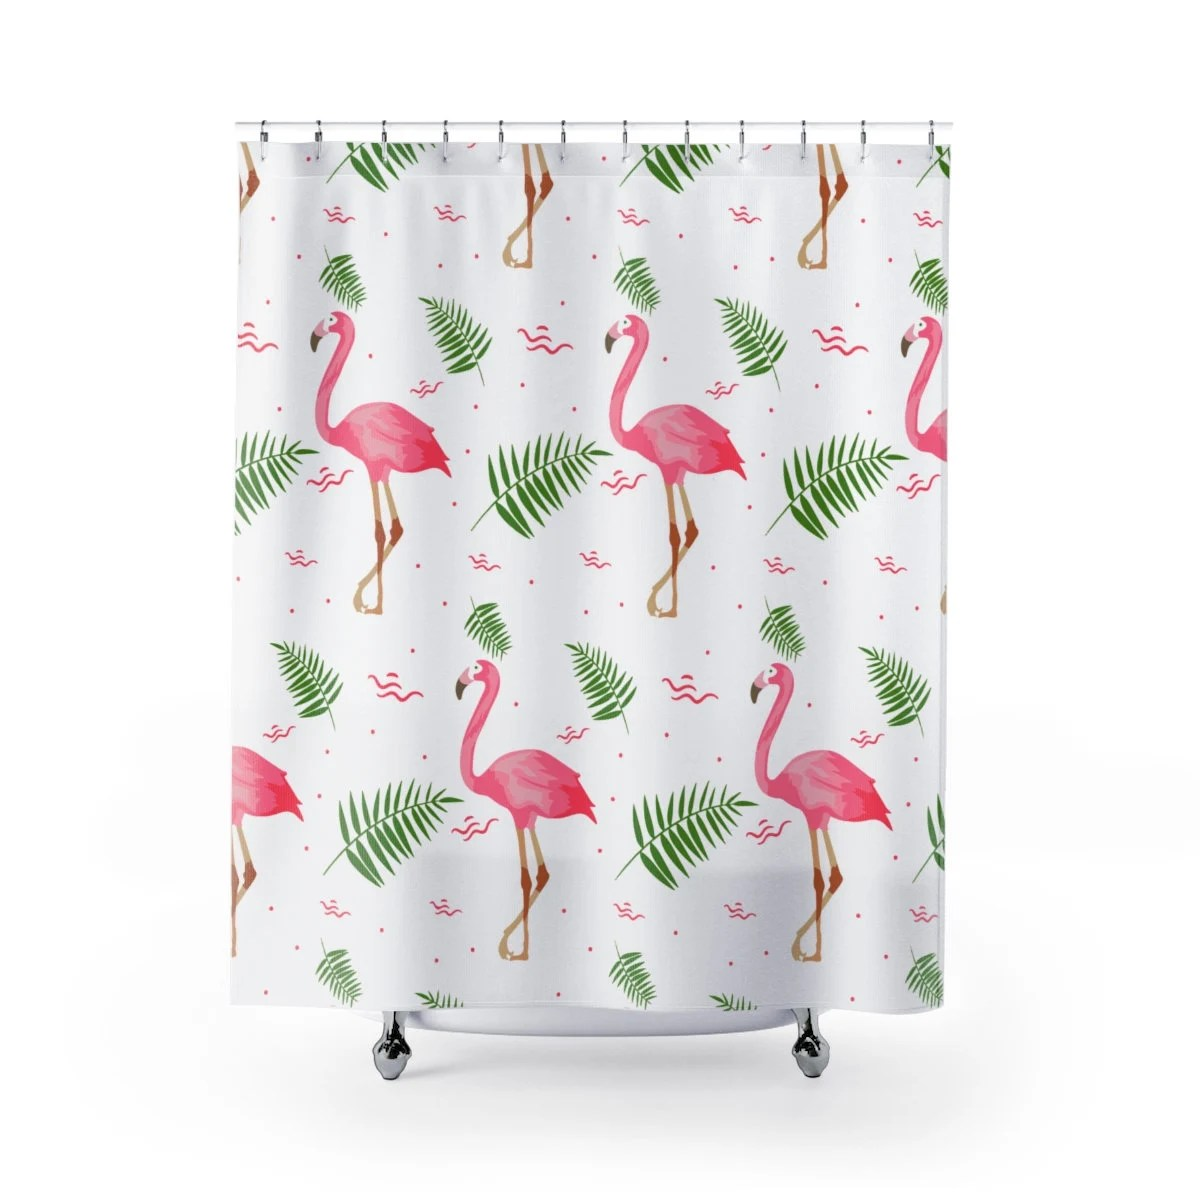 flamingo shower curtains bathroom accessories birds zoo colorful shower curtains